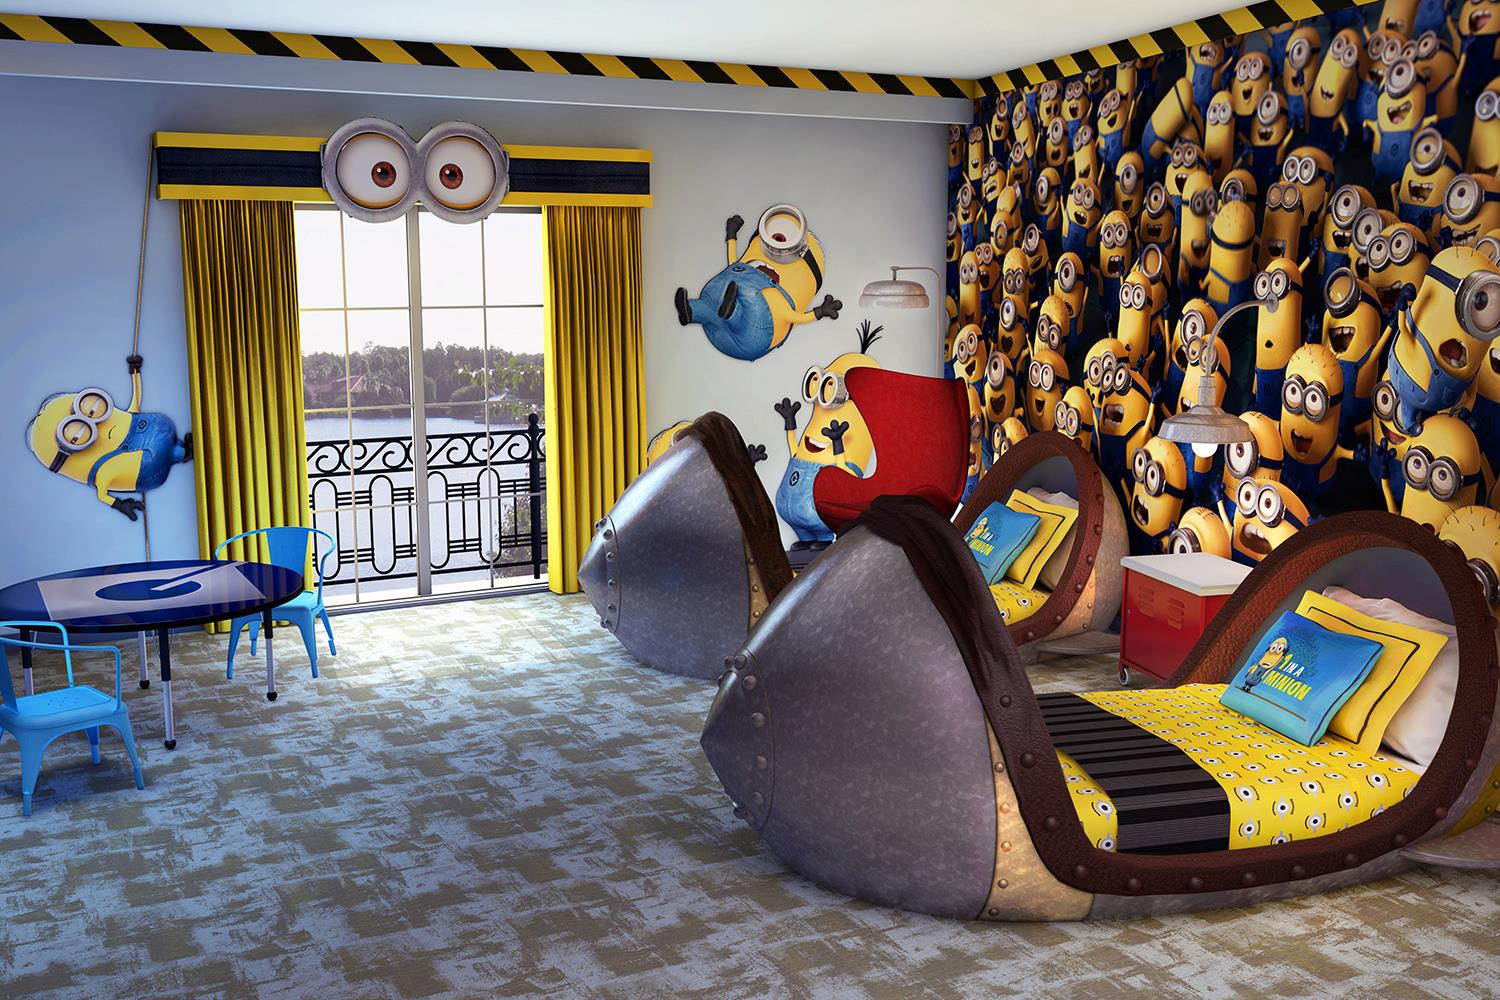 loews portofino bay adds despicable me themed kids suites